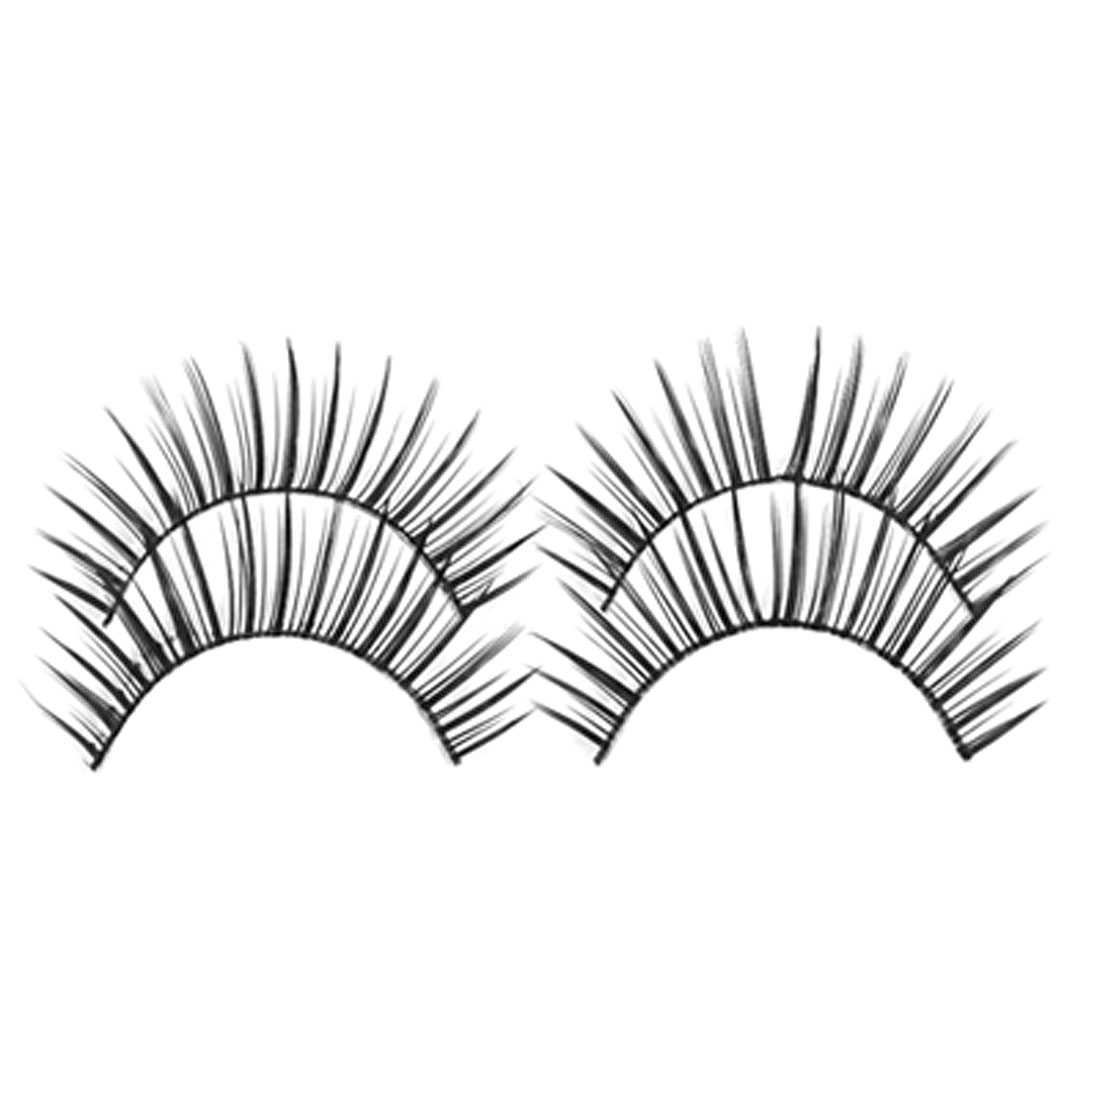 4 Pcs Black Thick Fake Eyelashes False Eye Lashes Strip